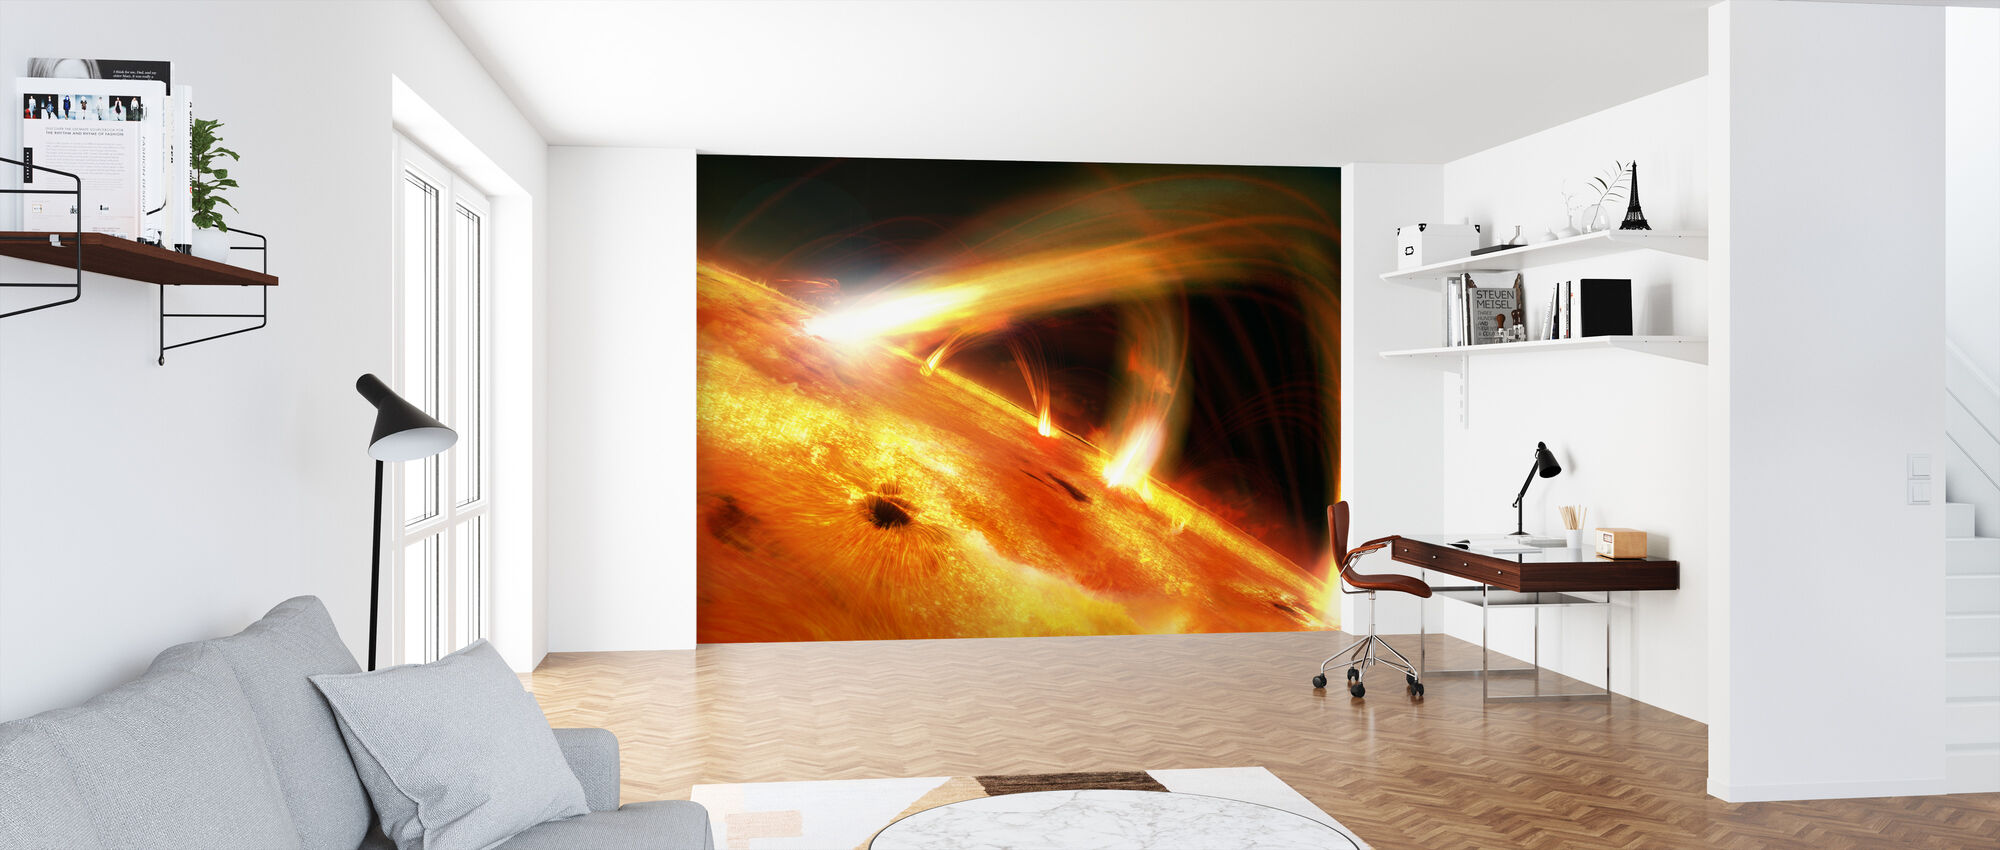 Sun Flares - Wallpaper - Office